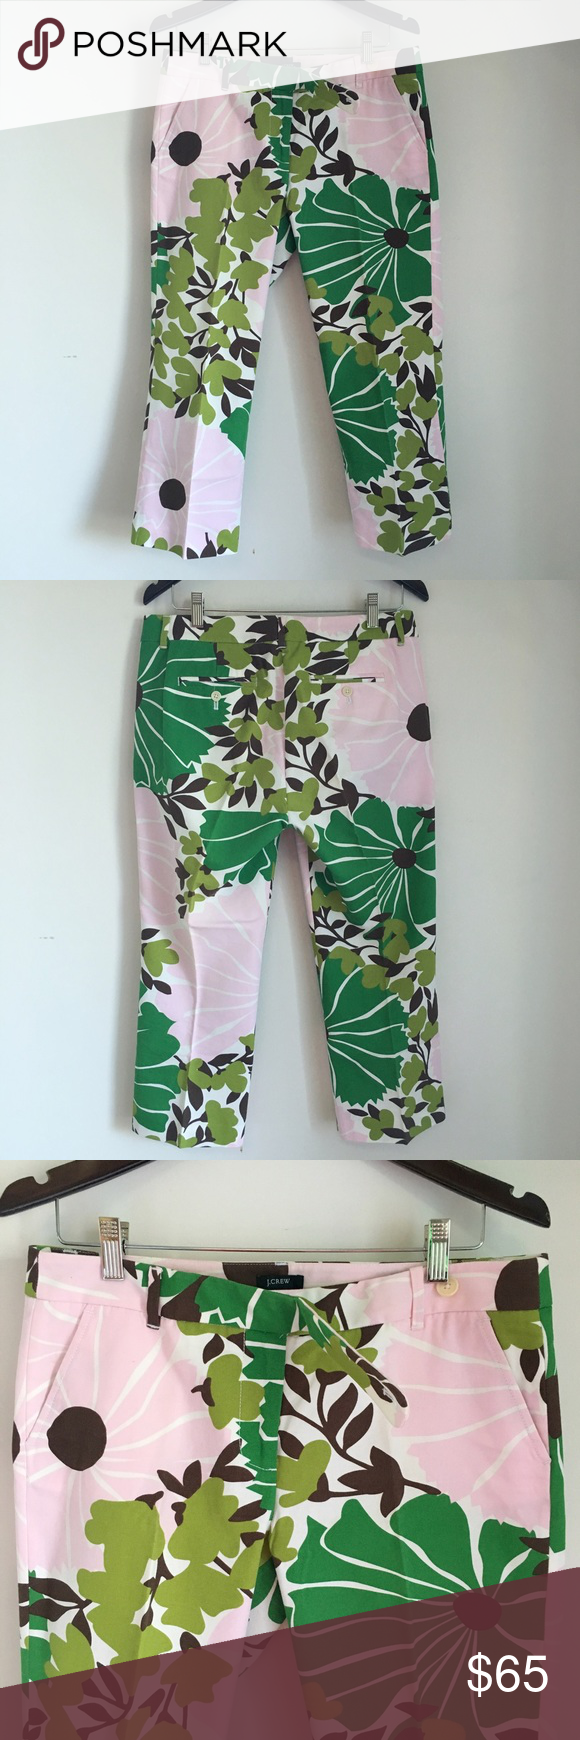 J crew cropped graphic floral print trousers EUC eye catching and rare vintage print. Great for any Lilly Pulitzer or Kate Spade lover in addition to J Crew collectors. Not factory. J. Crew Pants Ankle & Cropped